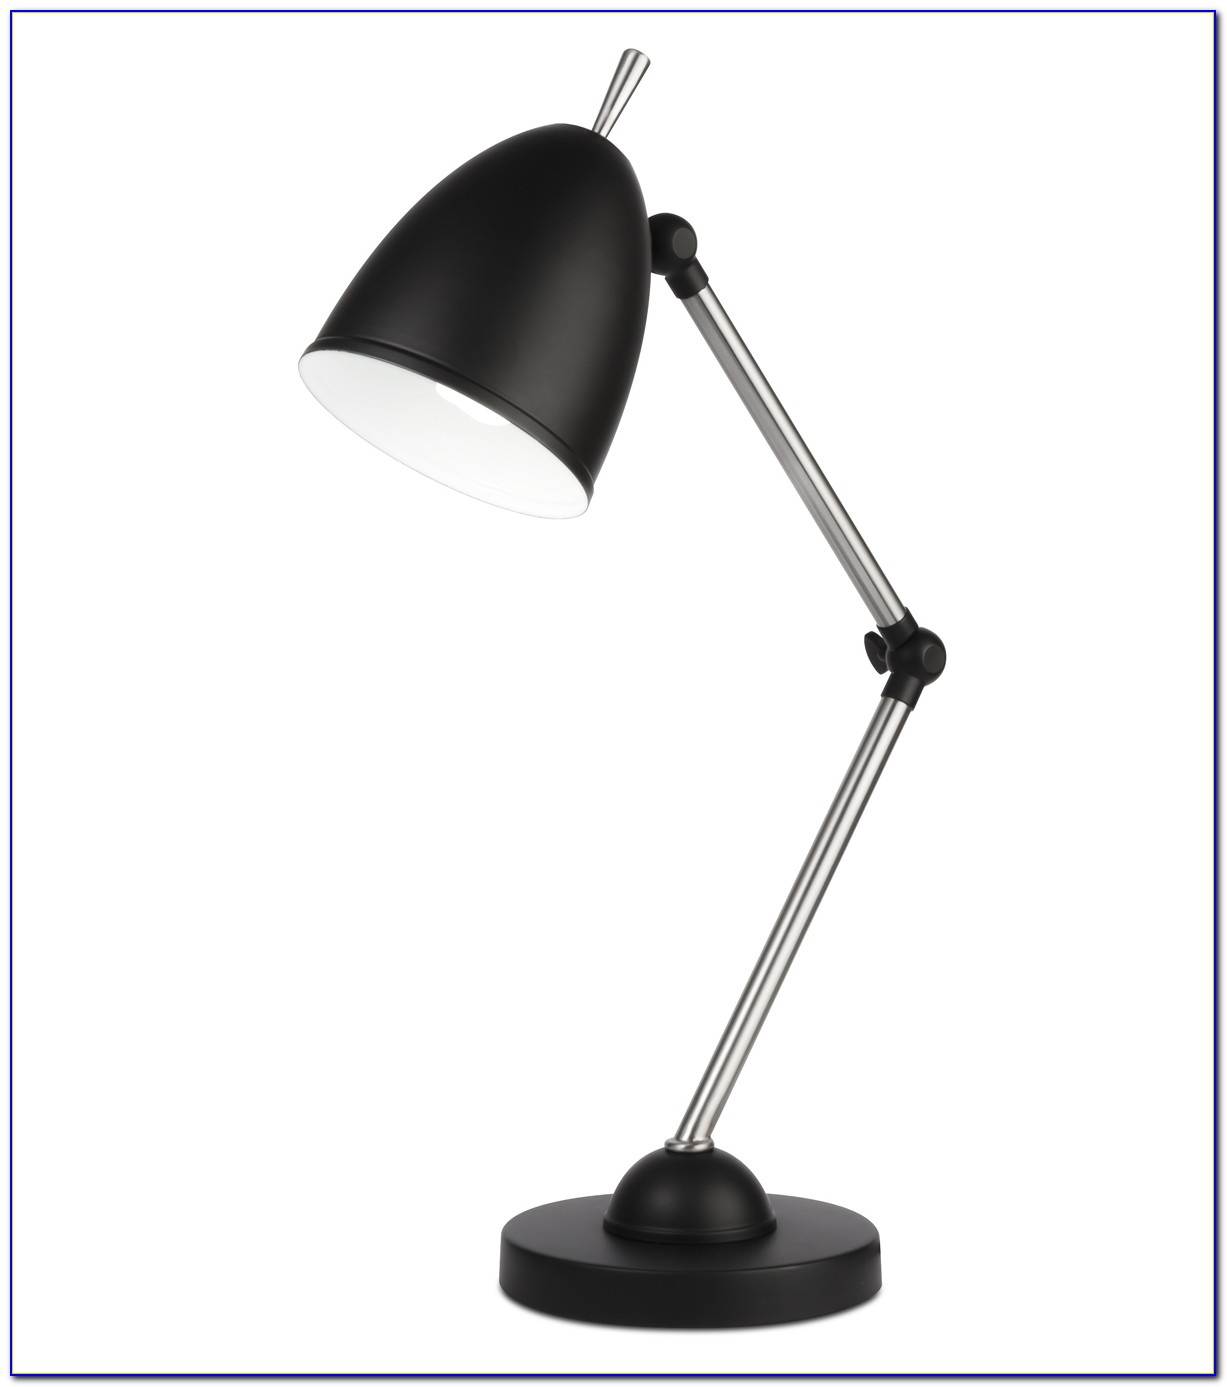 Ottlite Desk Lamp Bulb